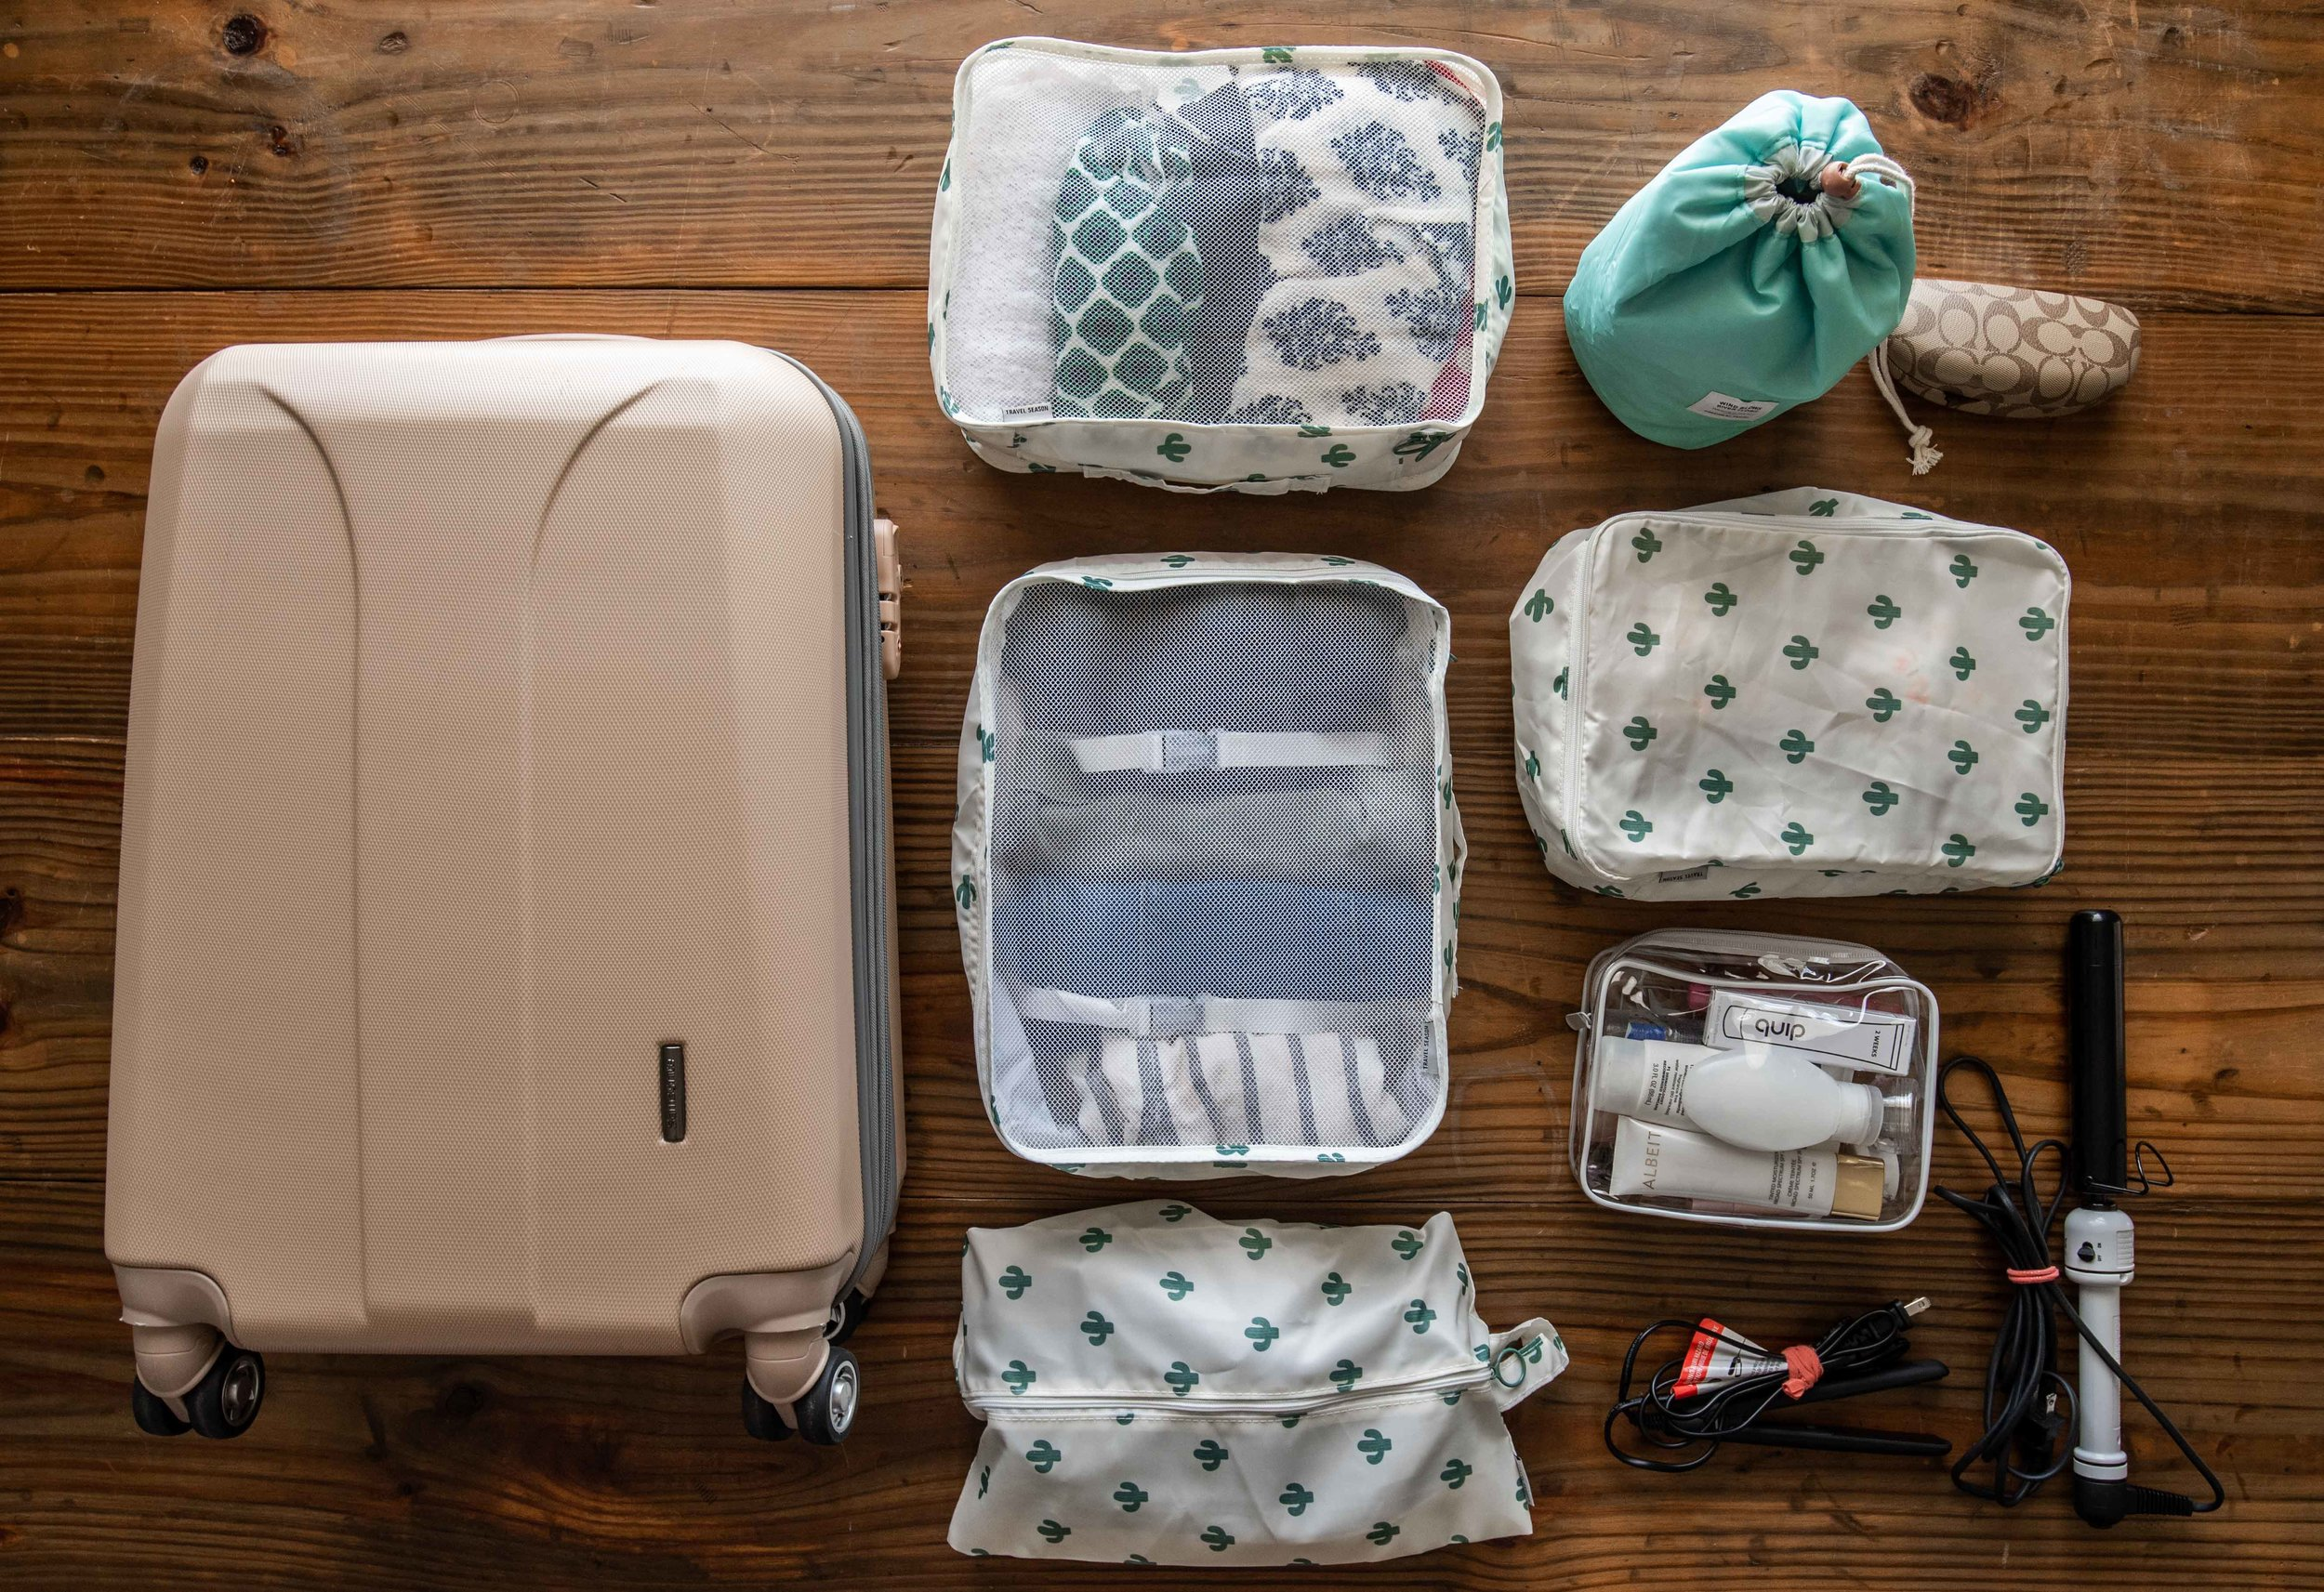 I went for the packing cubes with the cactus pattern.